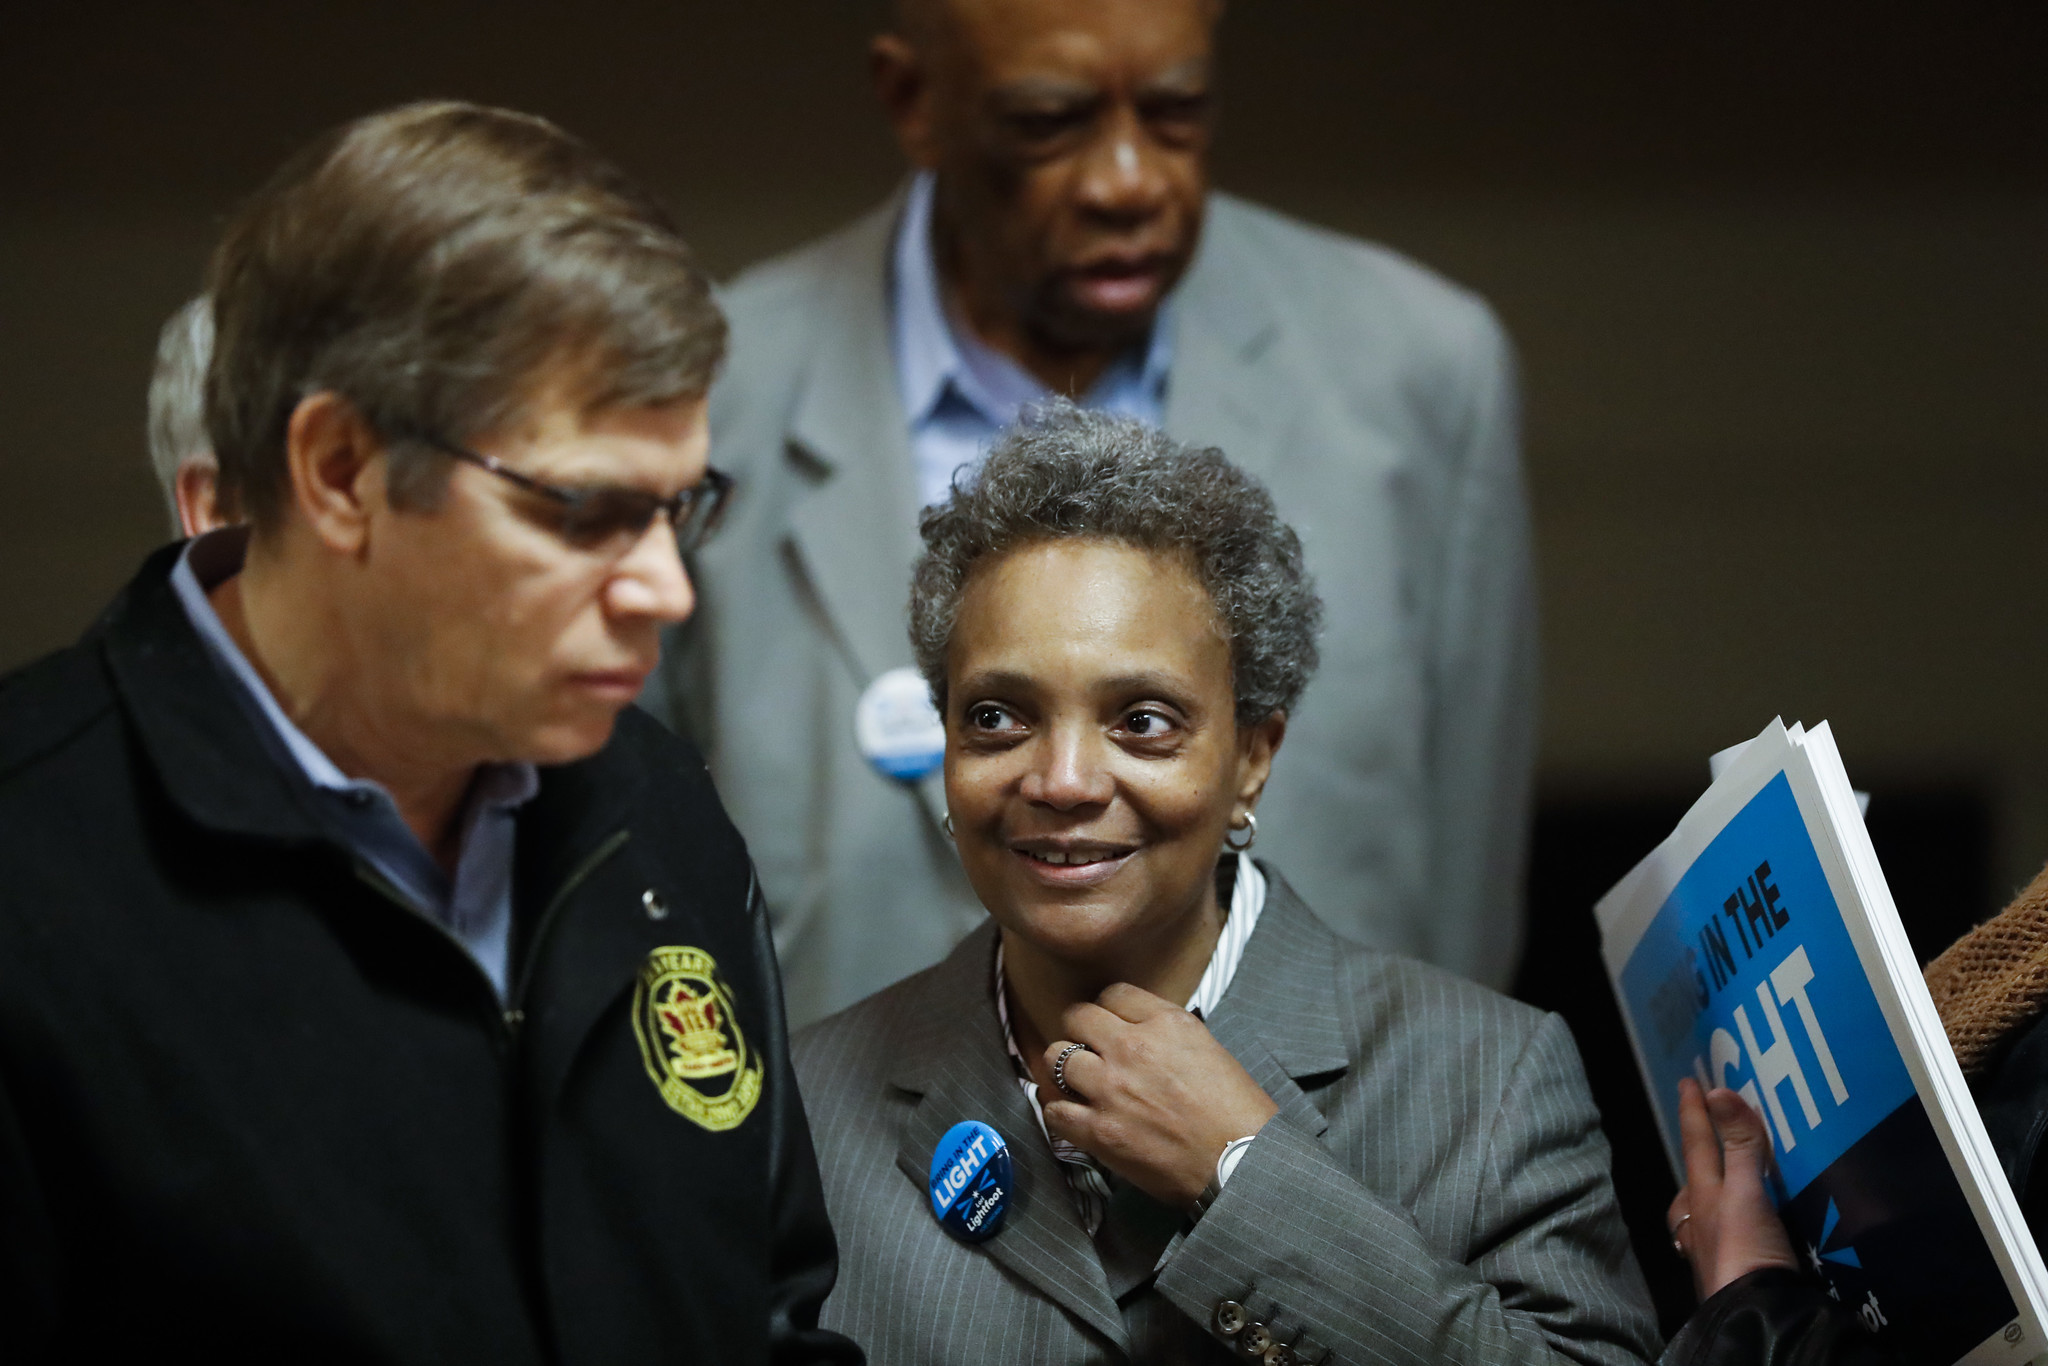 Attacked as 'wealthy corporate lawyer,' Lightfoot defends legal work, progressive credentials